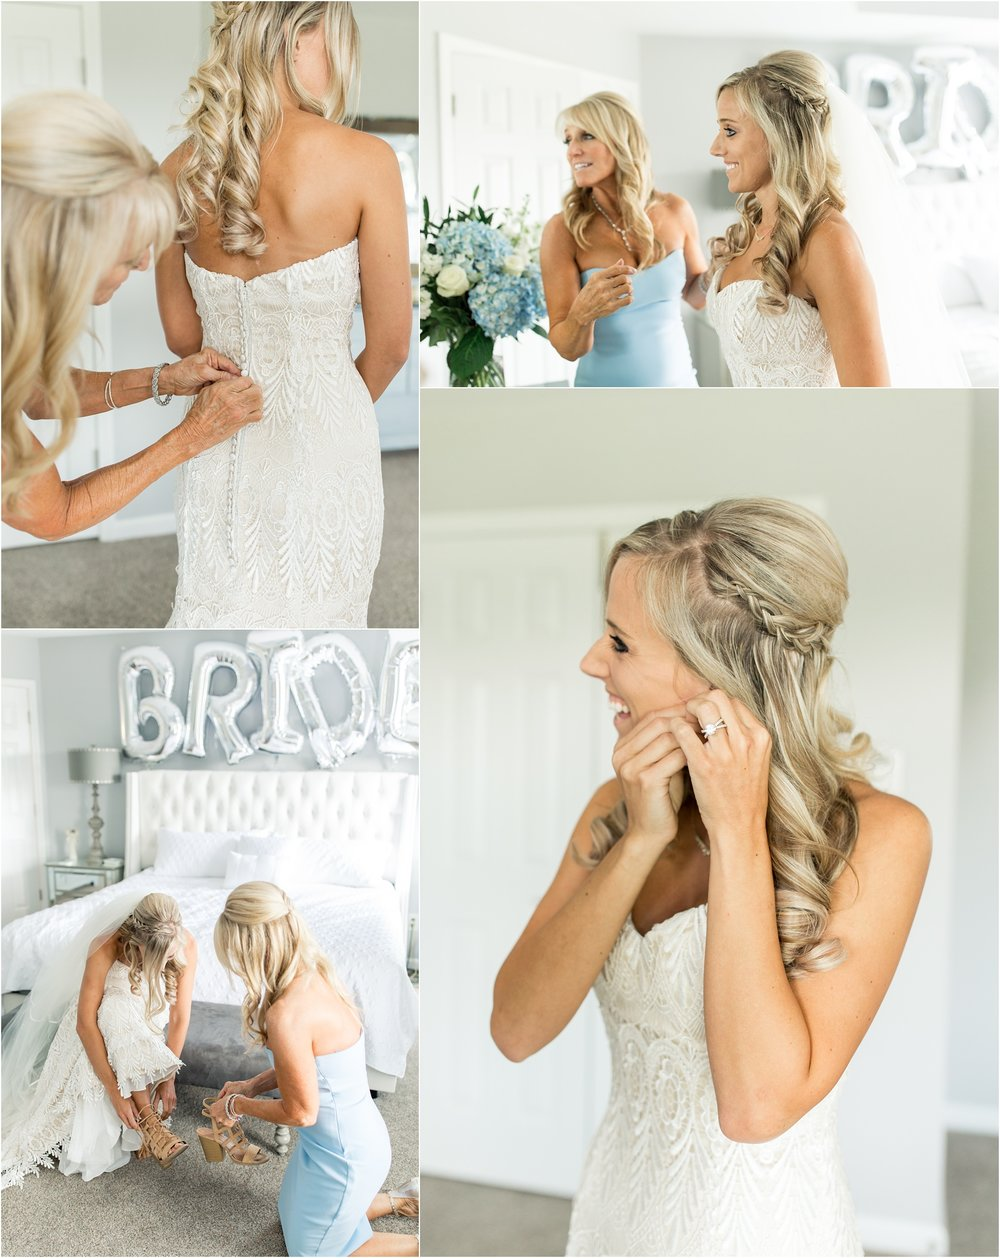 Savannah Eve Photography- Barkie-Wilson Wedding- Sneak Peek-9.jpg